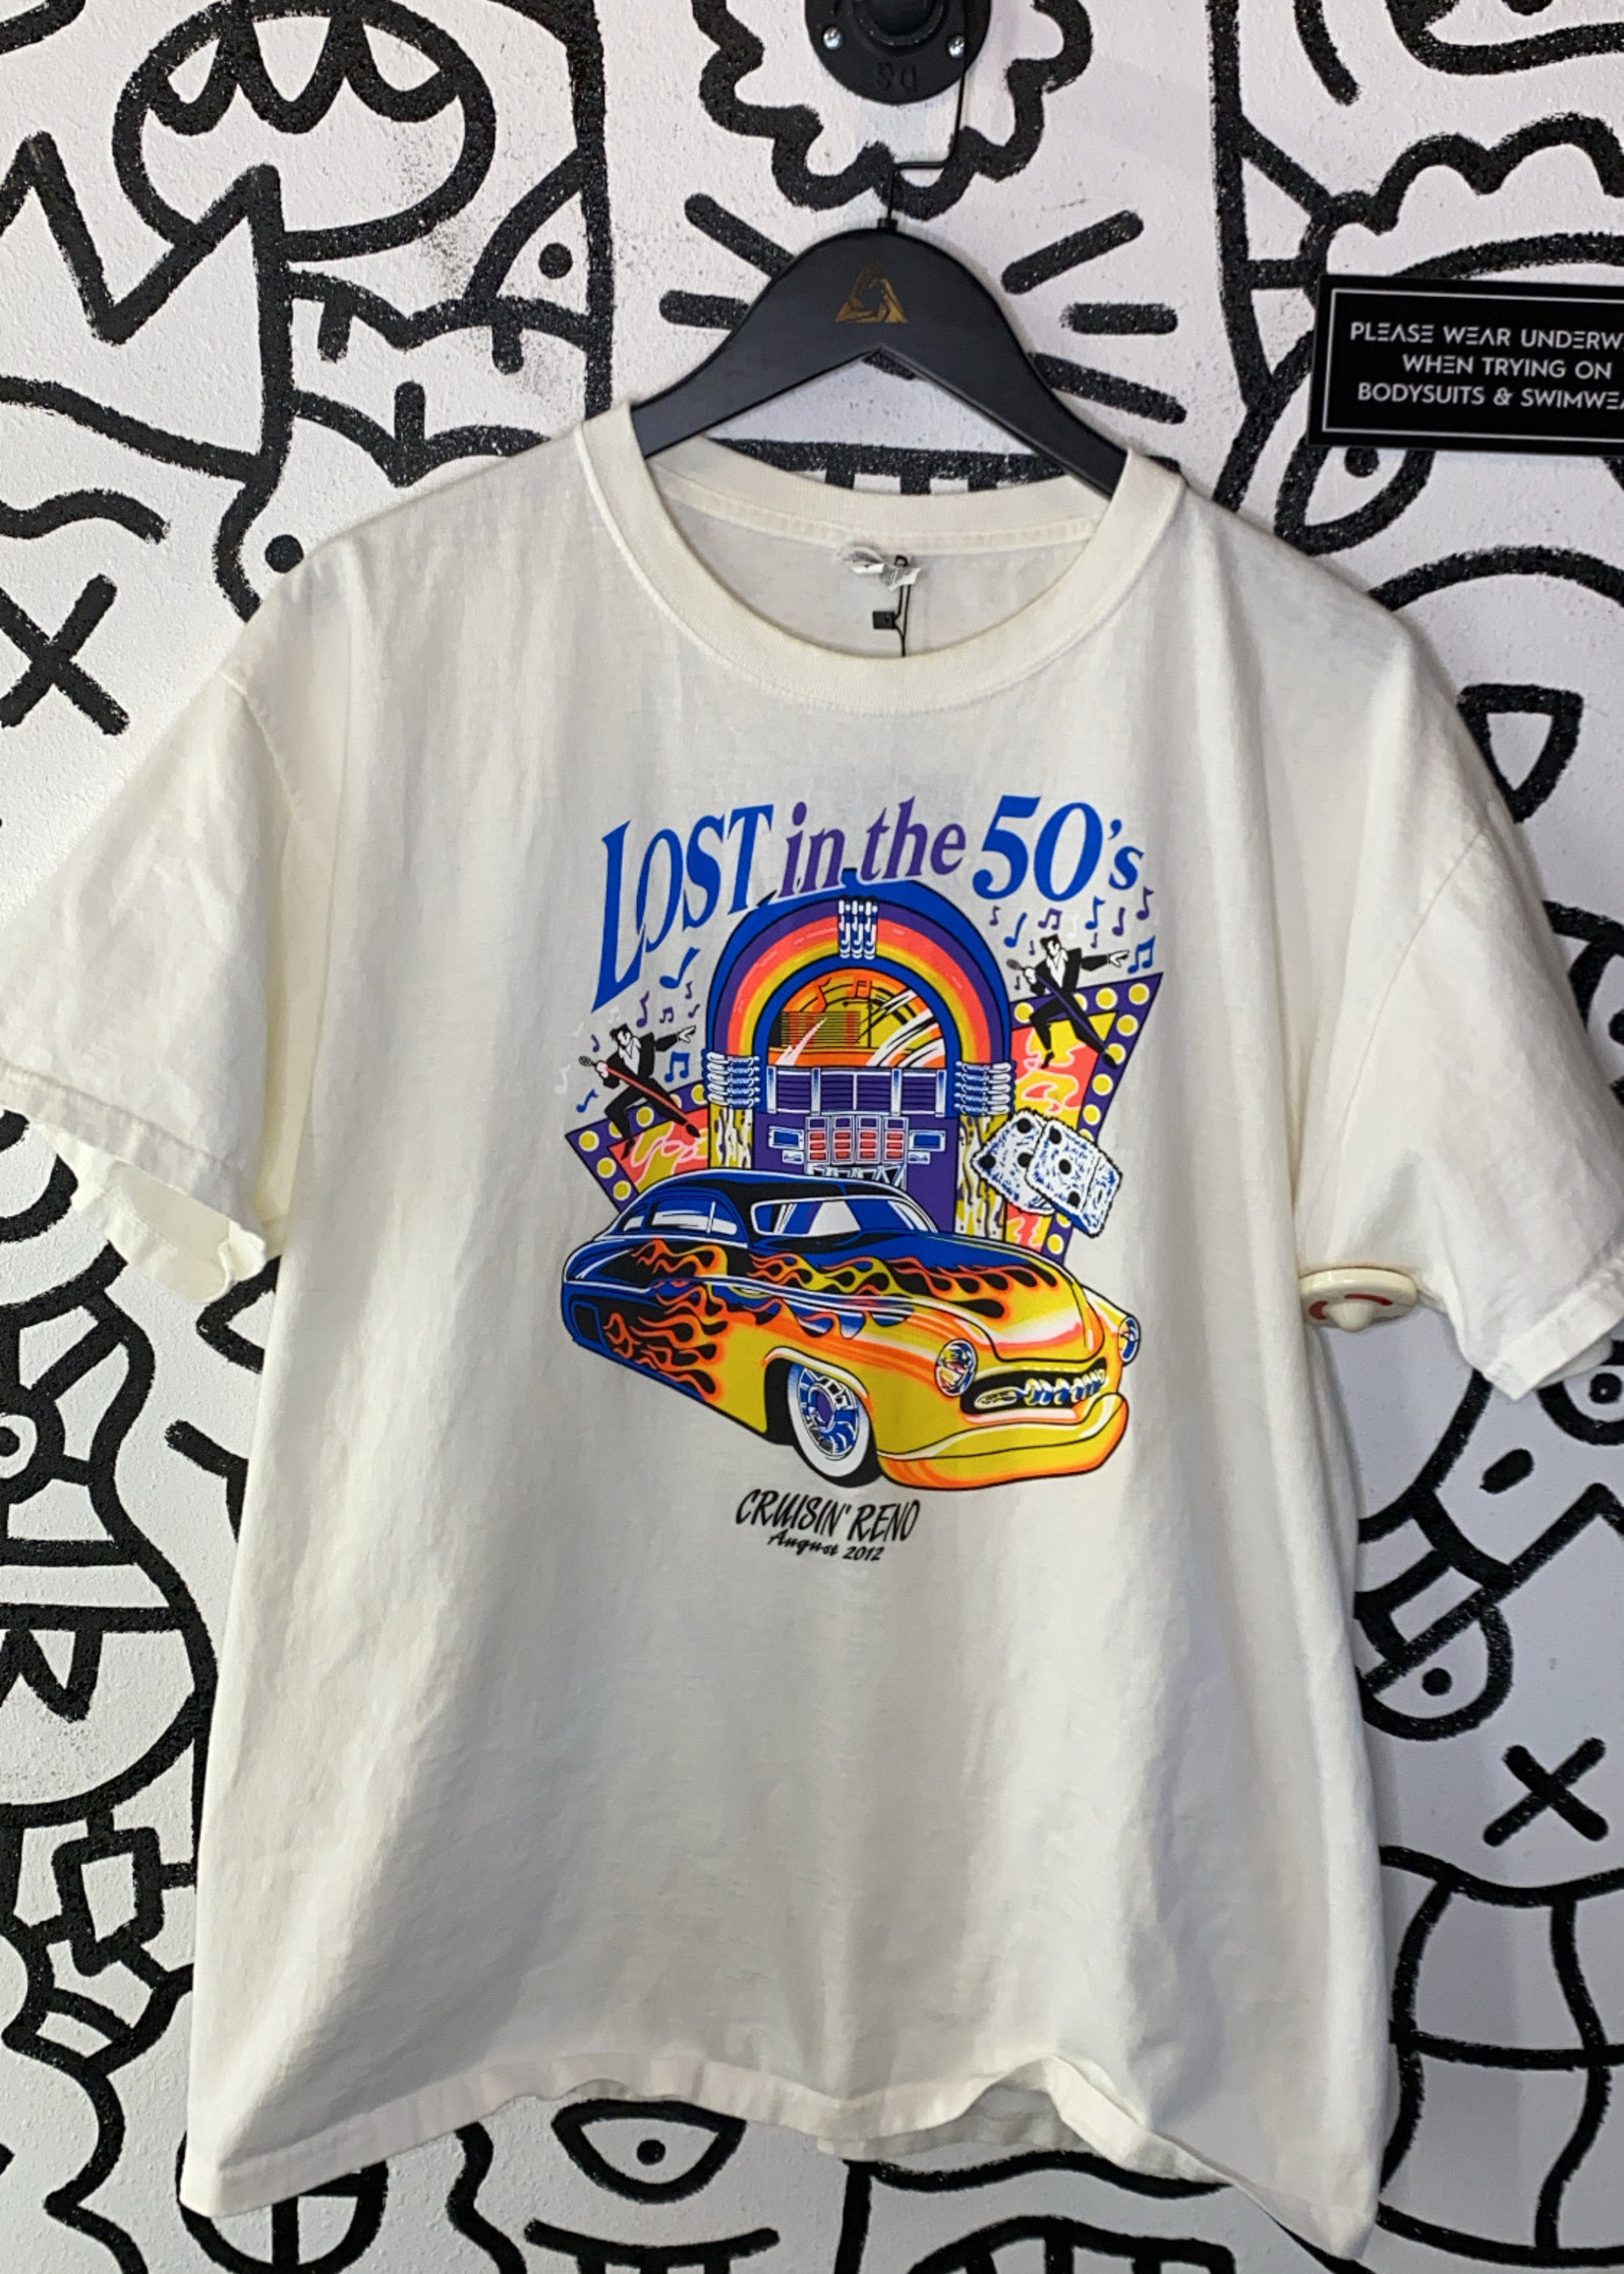 Lost in the 50s graphic t shirt XL